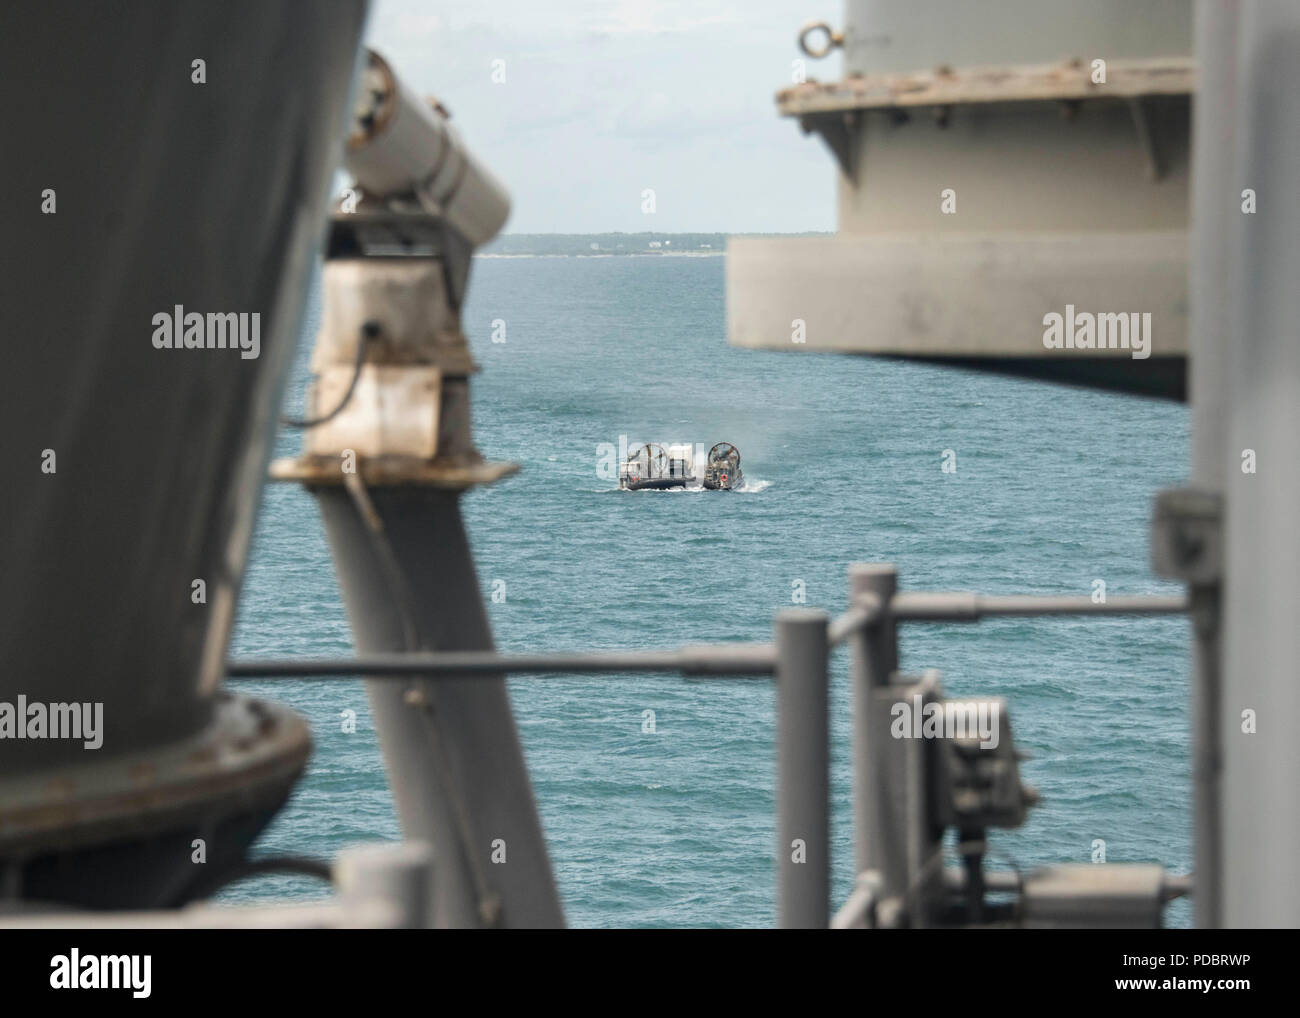 ATLANTIC OCEAN (Aug. 3, 2018) A landing craft, air cushion, attached to Assault Craft Unit 4, passes the Wasp-class amphibious assault ship USS Iwo Jima (LHD 7), Aug. 3, 2018. Iwo Jima is deployed with its amphibious ready group in support of maritime security operations and theatre security cooperation efforts in Europe and the Middle East. (U.S. Navy photo by Mass Communication Specialist 3rd Class Dominick A. Cremeans/Released) Stock Photo